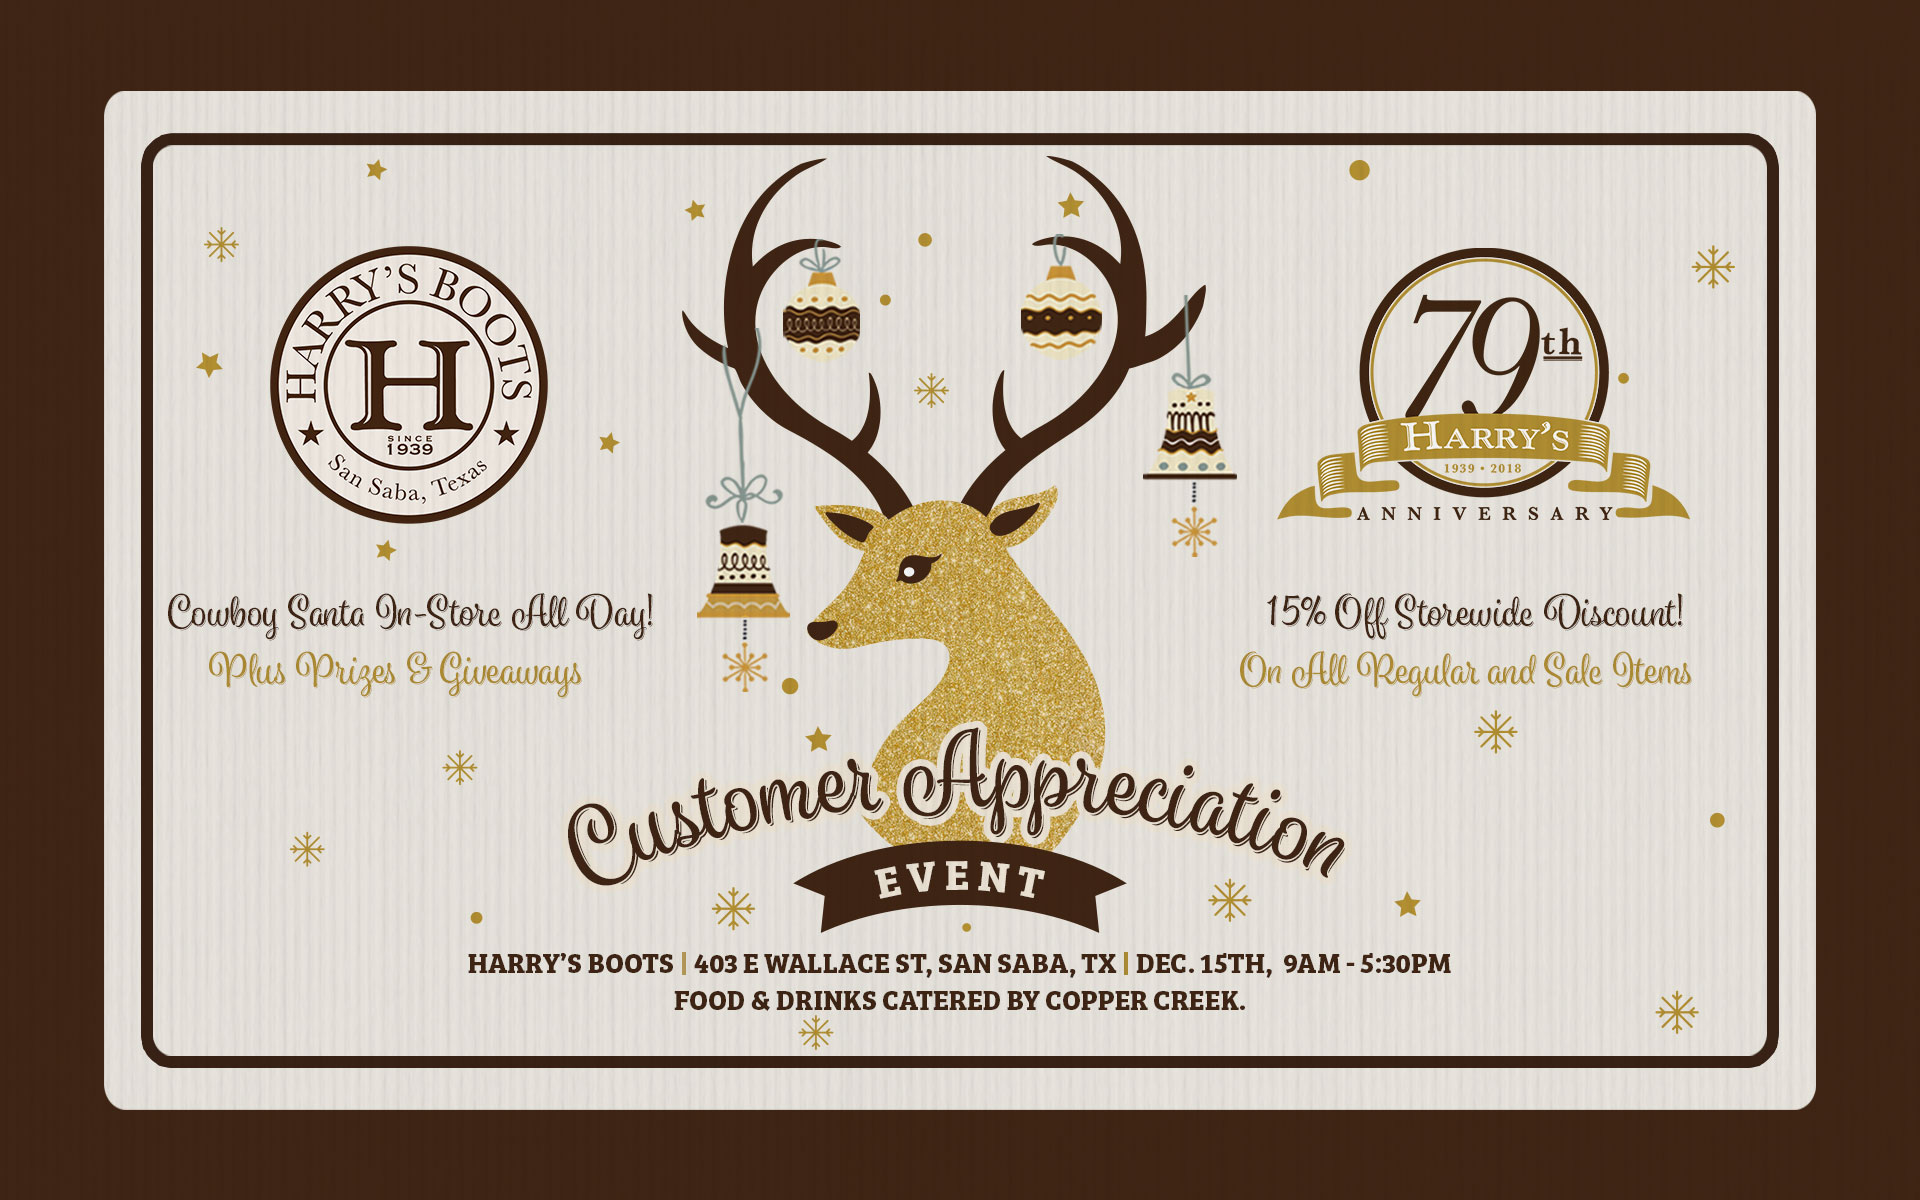 Harry's Boots 79th Anniversary & Customer Appreciation Event